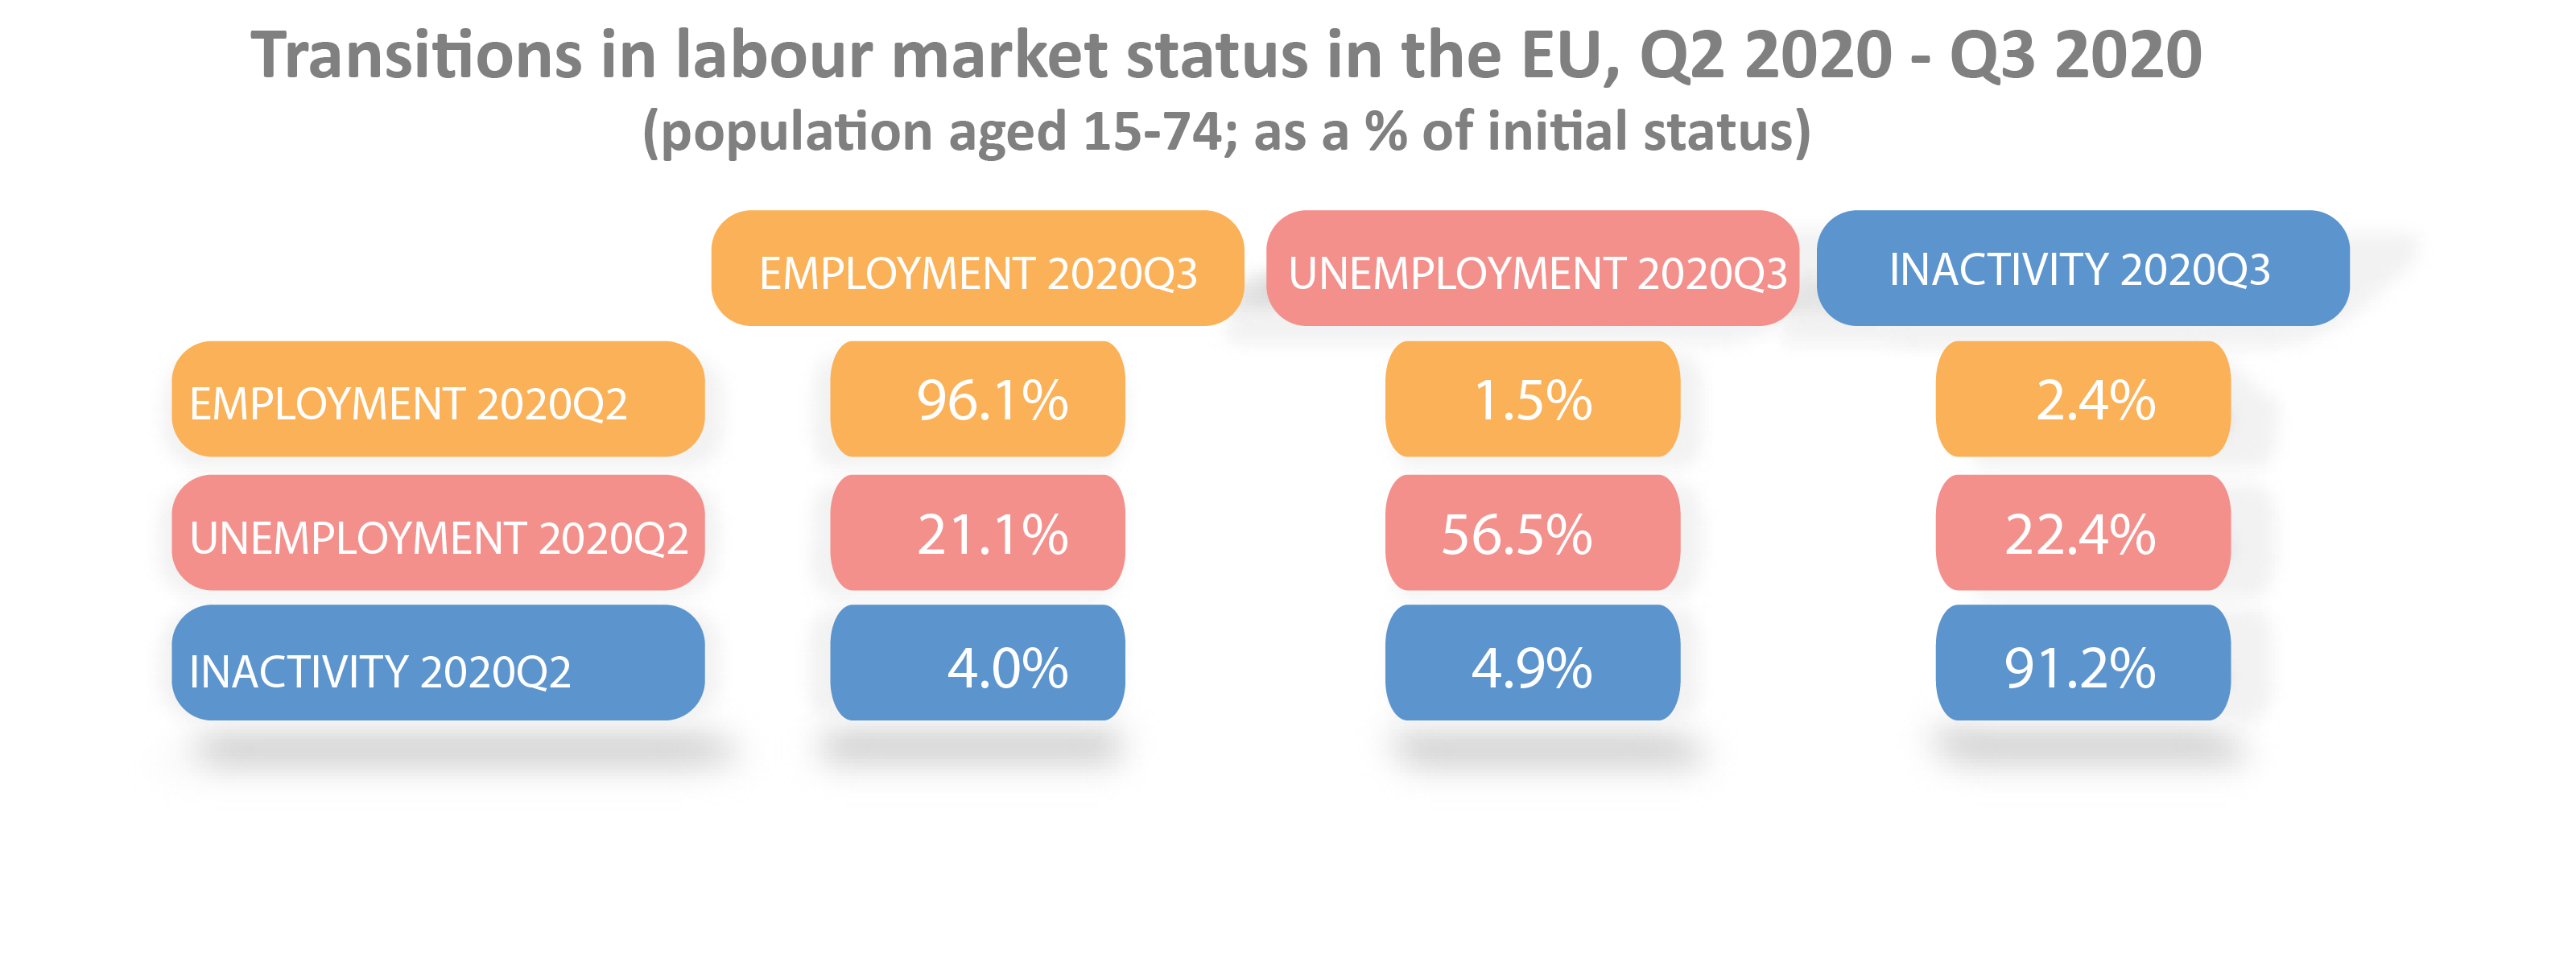 Transitions in labour market status in the EU, Q2 2020 - Q3 2020 (% of initial status)